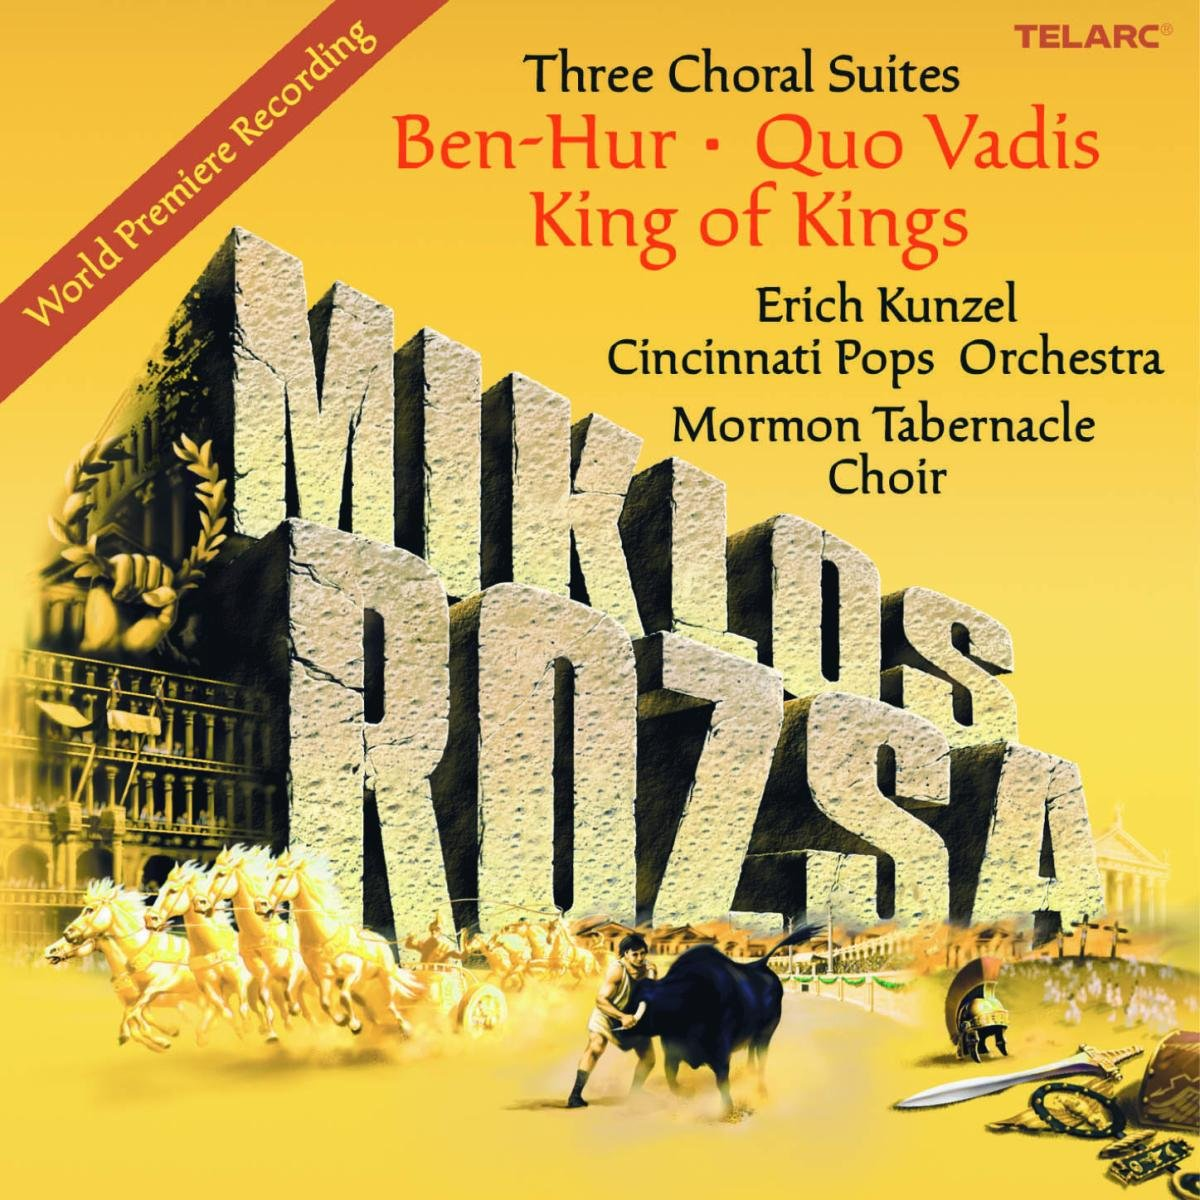 Three Choral Suites